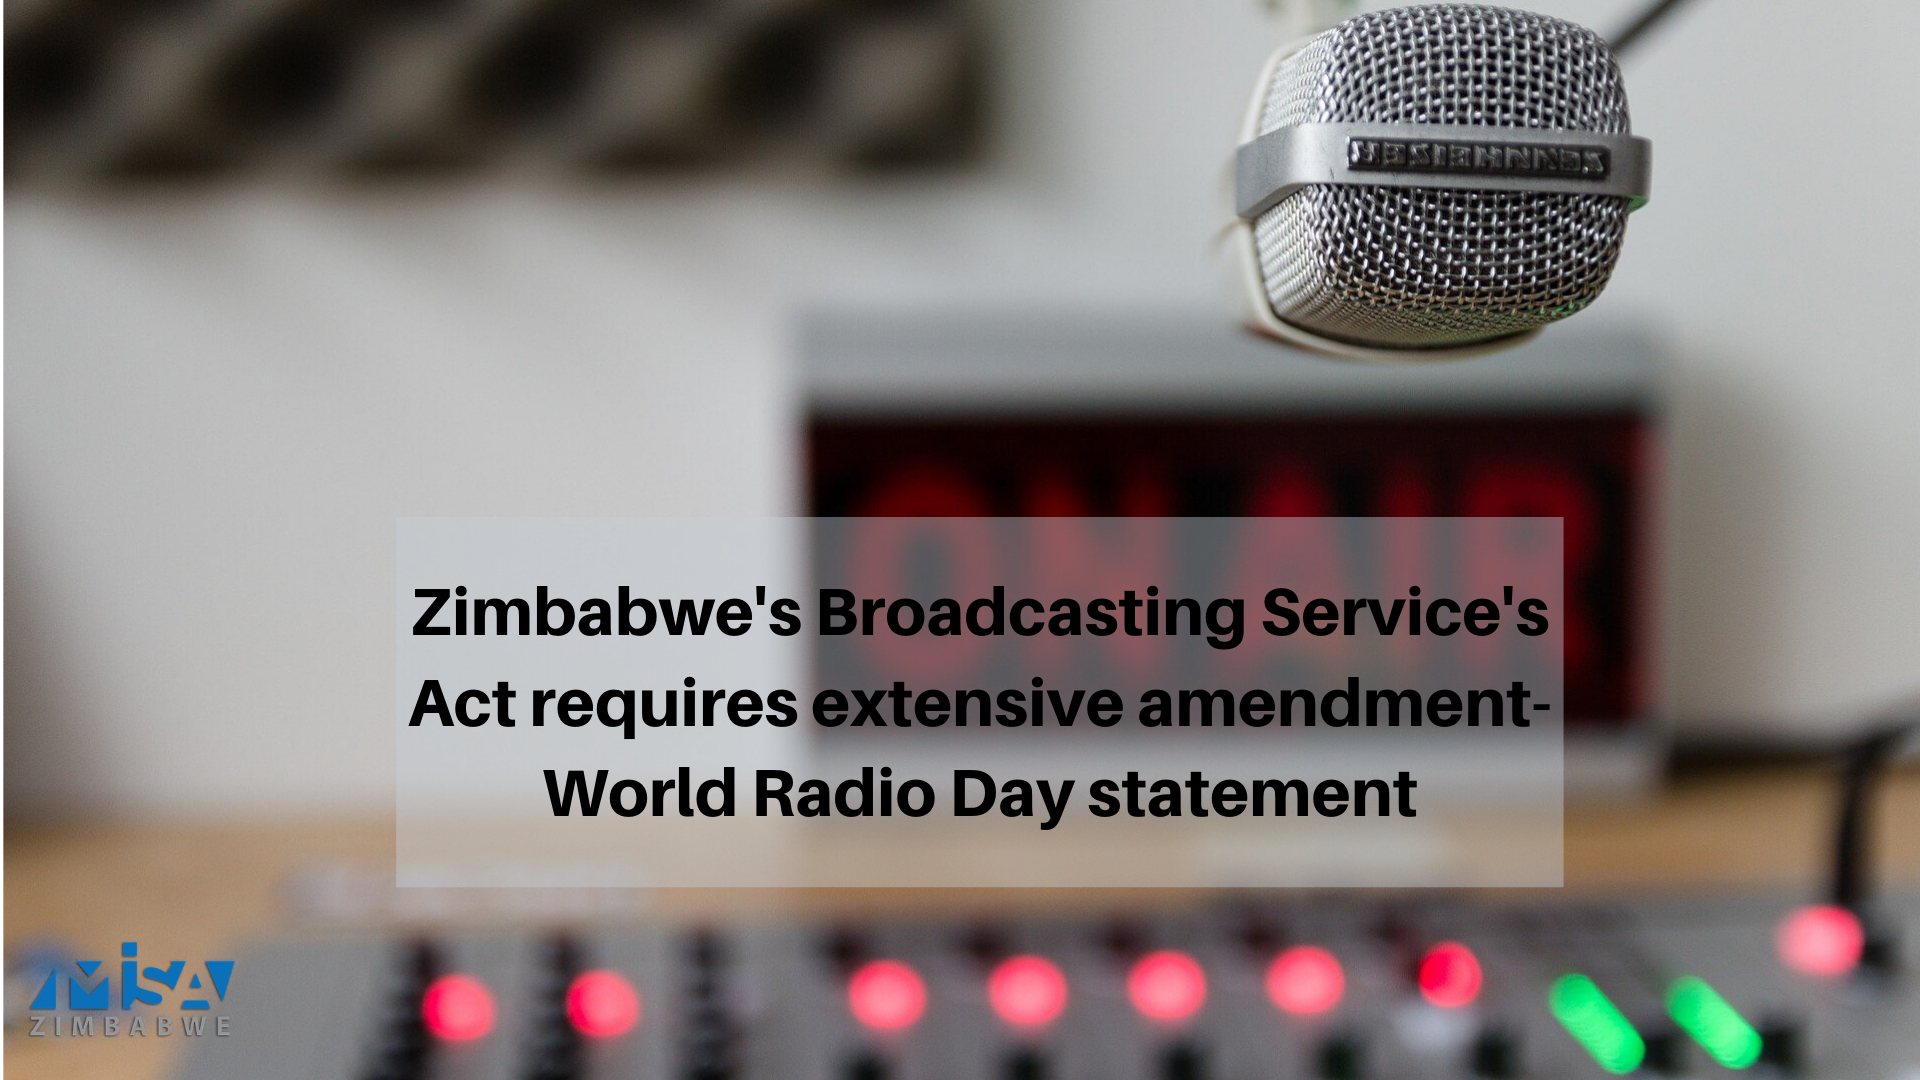 Zimbabwe's Broadcasting Service's Act requires extensive amendment